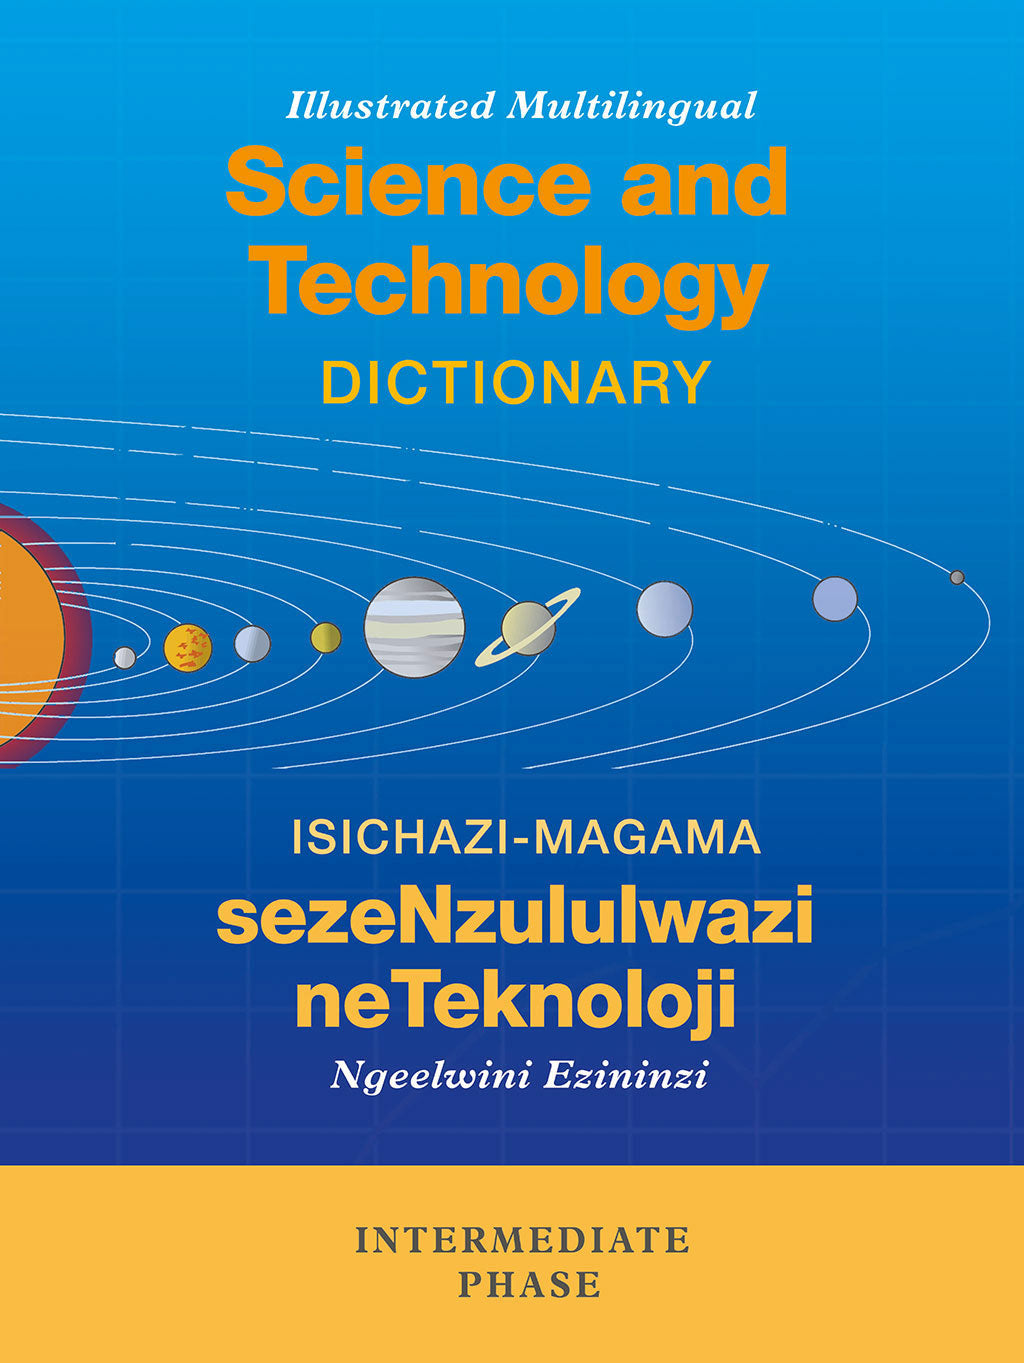 ILLUSTRATED MULTILINGUAL SCIENCE AND TECHNOLOGY DICTIONARY